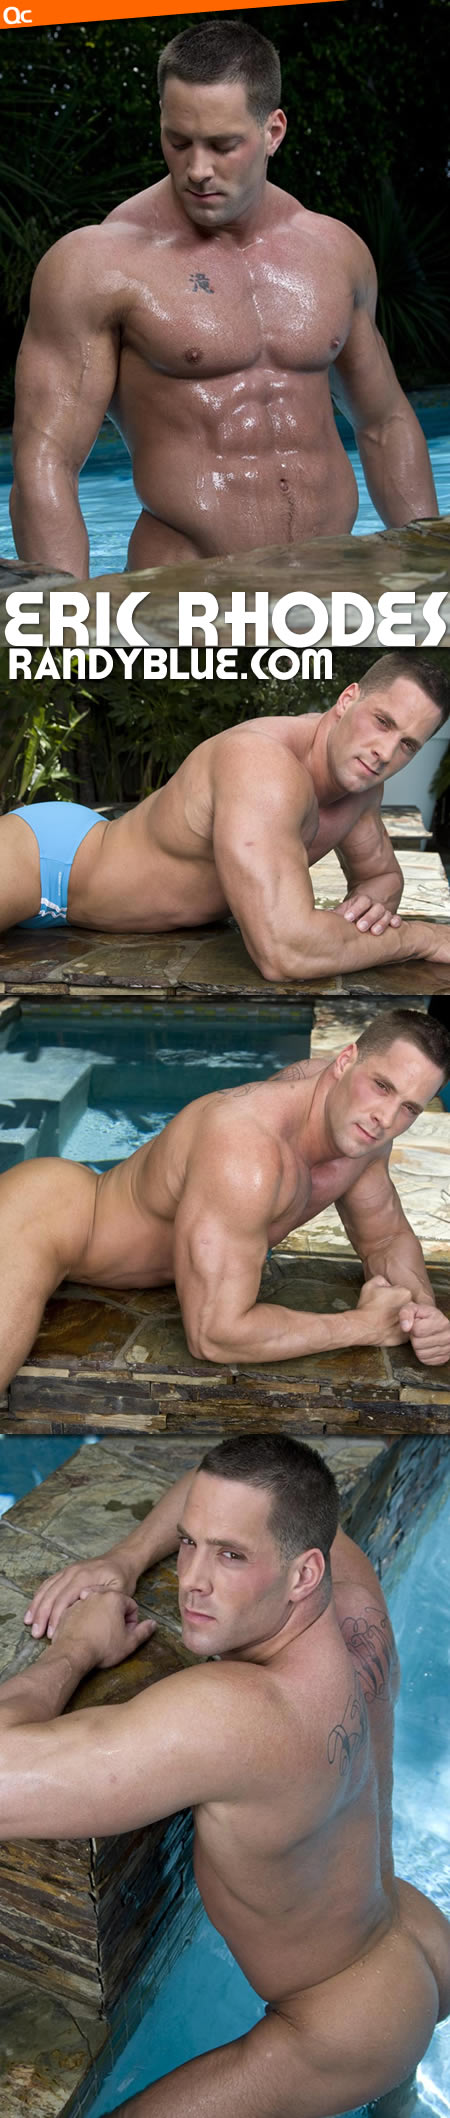 Randy Blue: Erik Rhodes